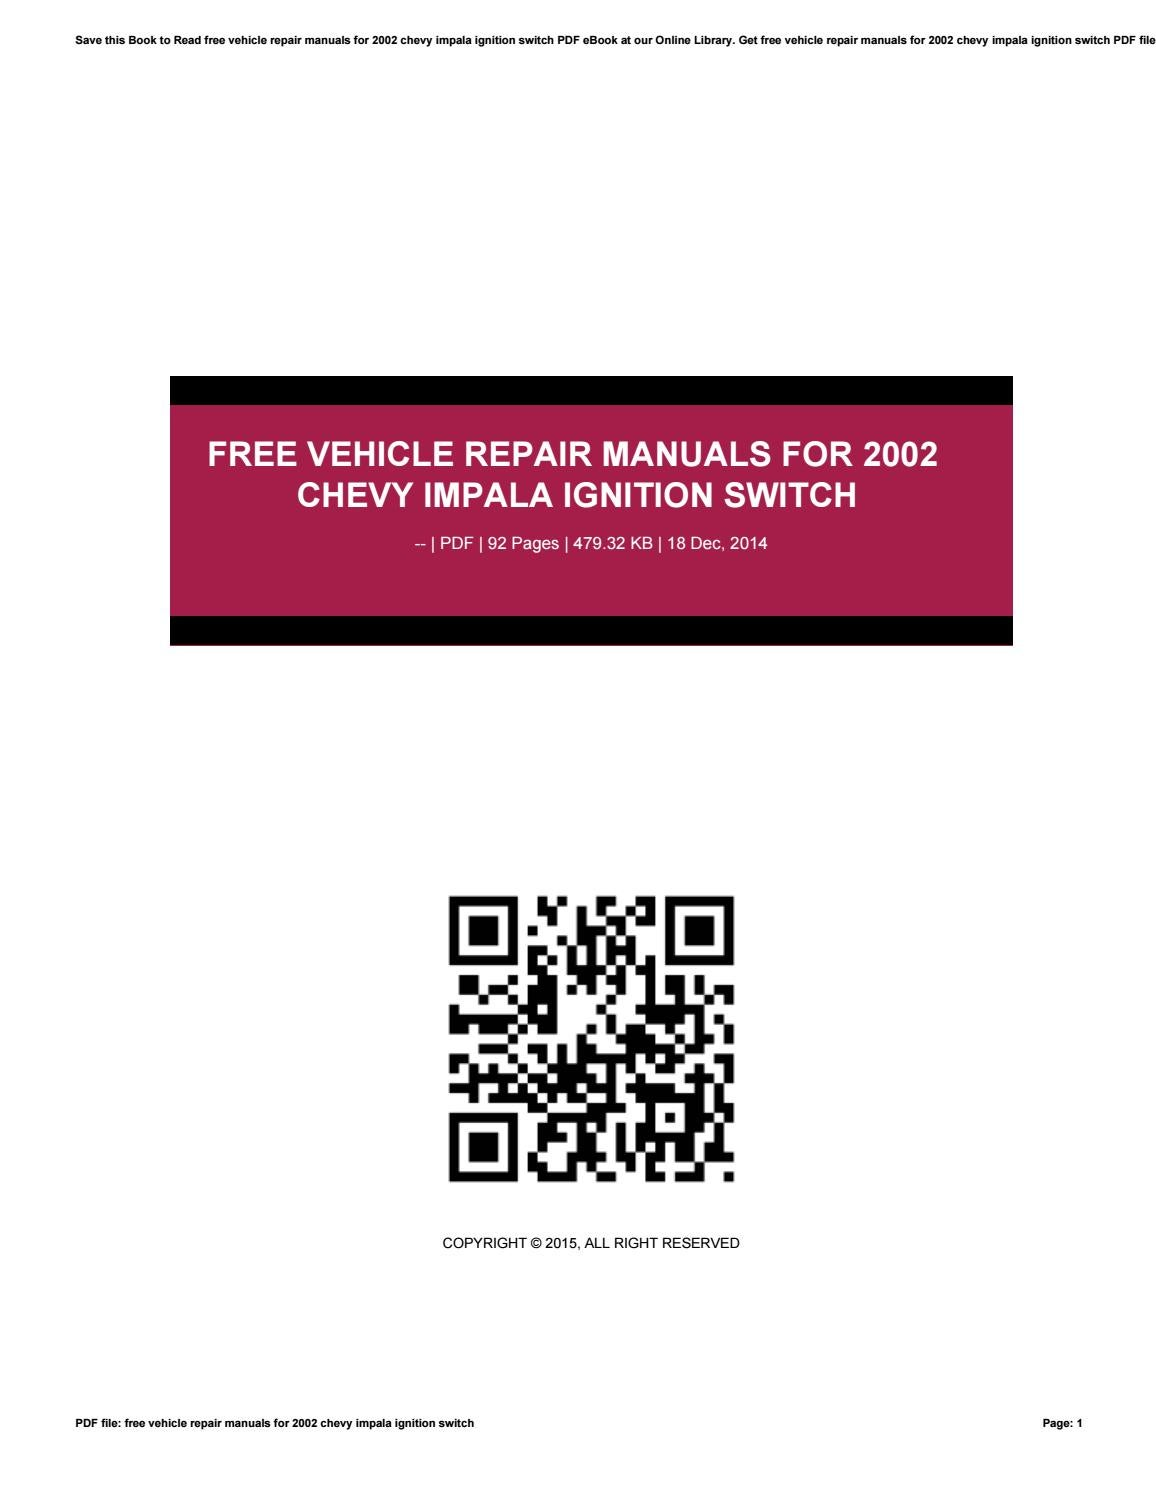 free vehicle repair manuals for 2002 chevy impala ignition switch by rh issuu com 2003 Chevrolet Impala 2002 chevy impala repair manual